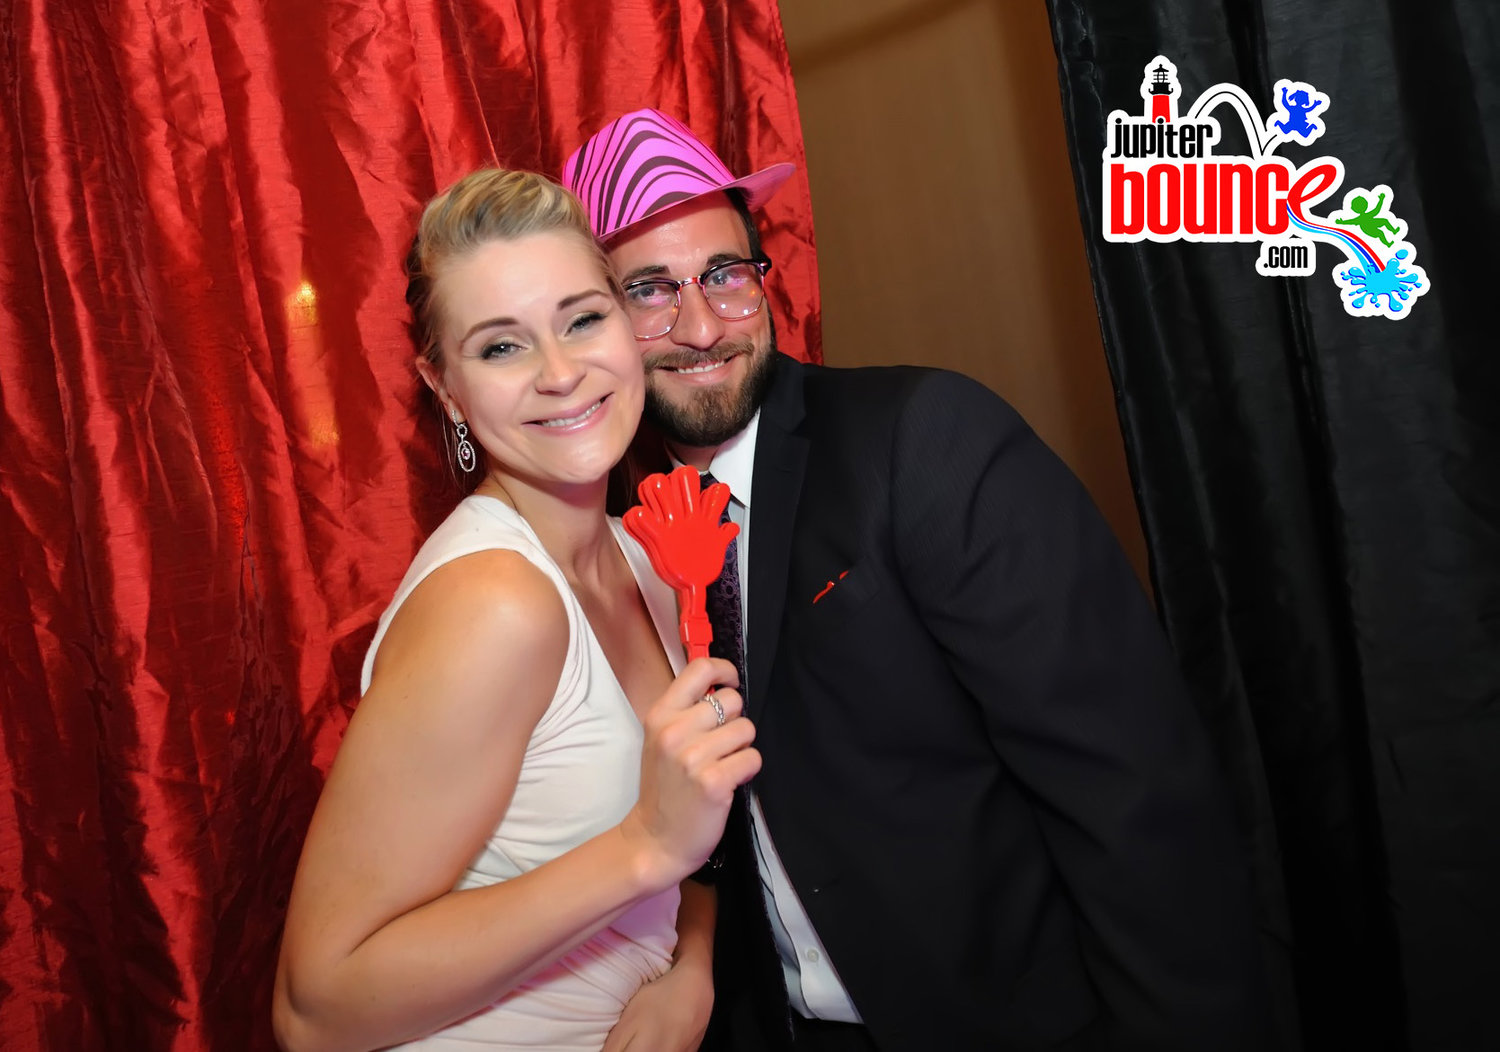 photobooth-jupiterbounce-westpalmbeach-weddingrentals-waterslides-obstaclecourse.jpg